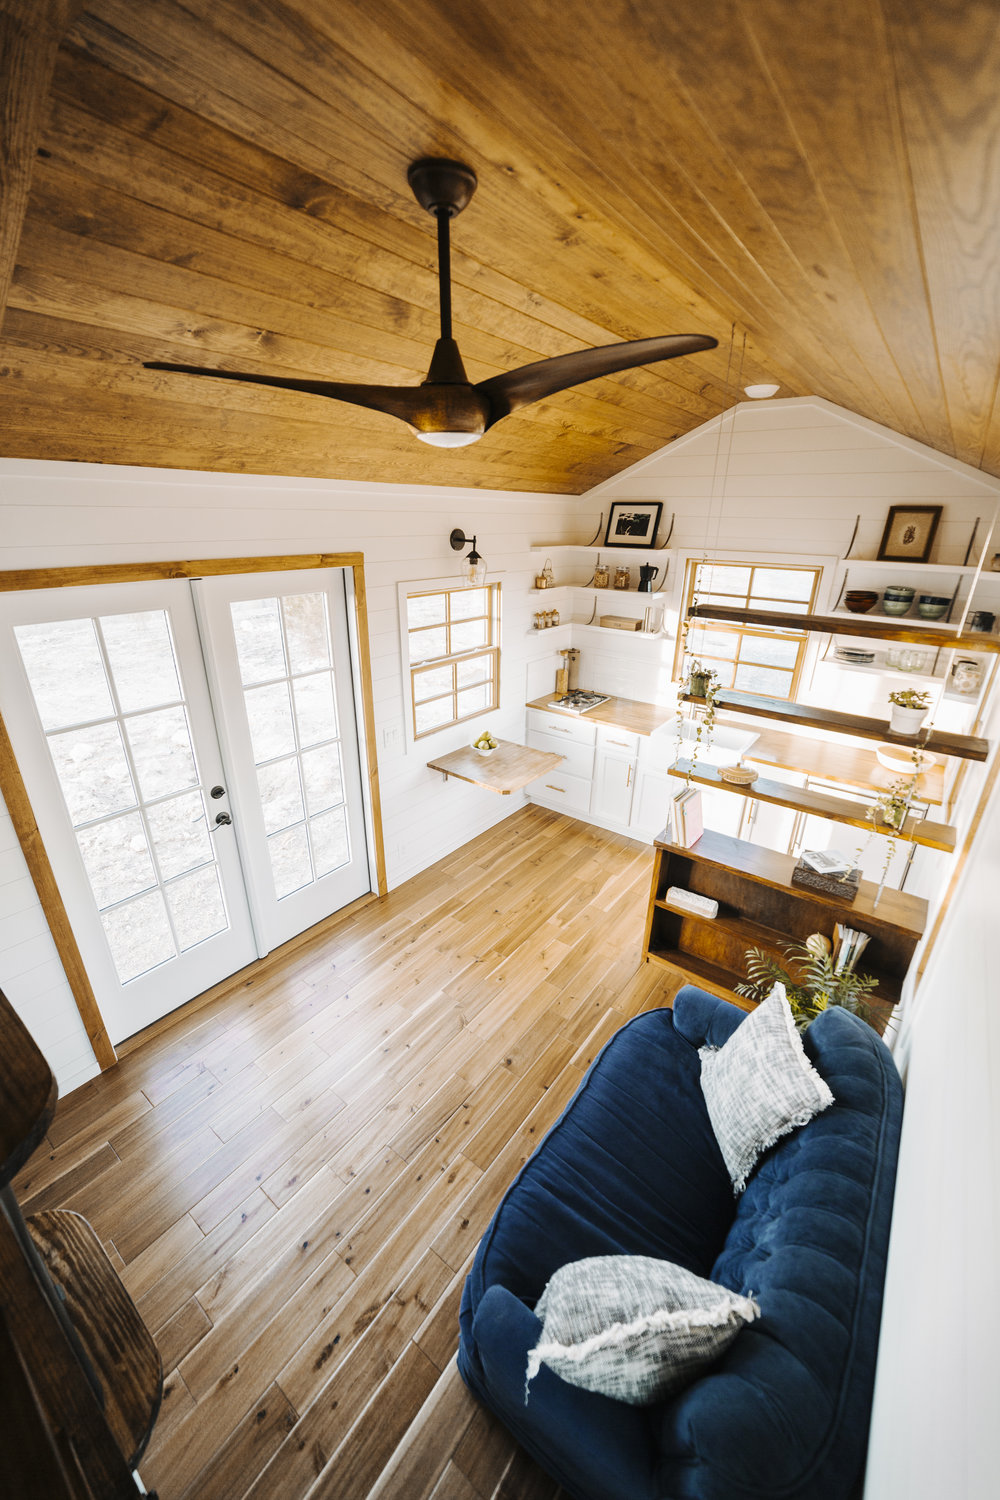 The Monocle by Wind River Tiny Homes - modern ceiling fan, hardwood flooring, loft, suspended cable shelving